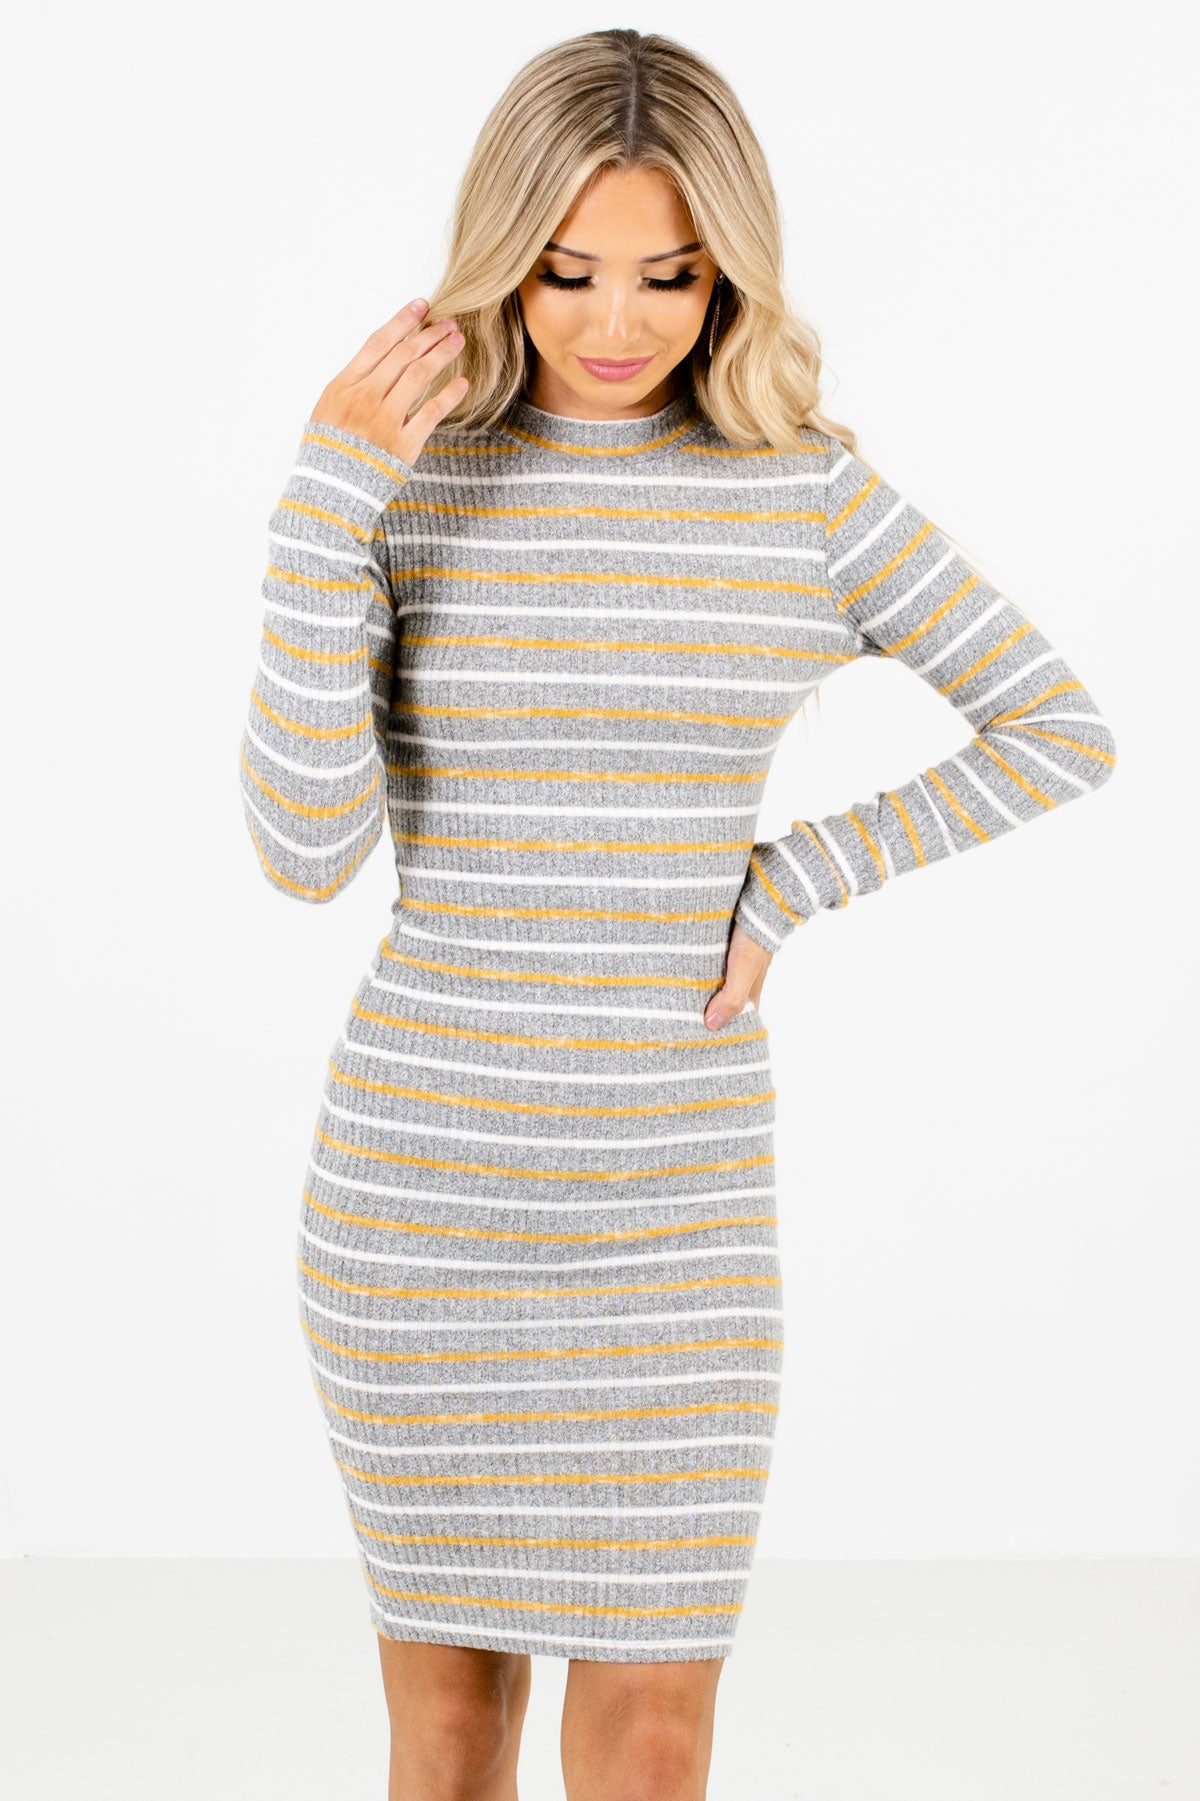 Gray Mustard and White Striped Boutique Mini Dresses for Women